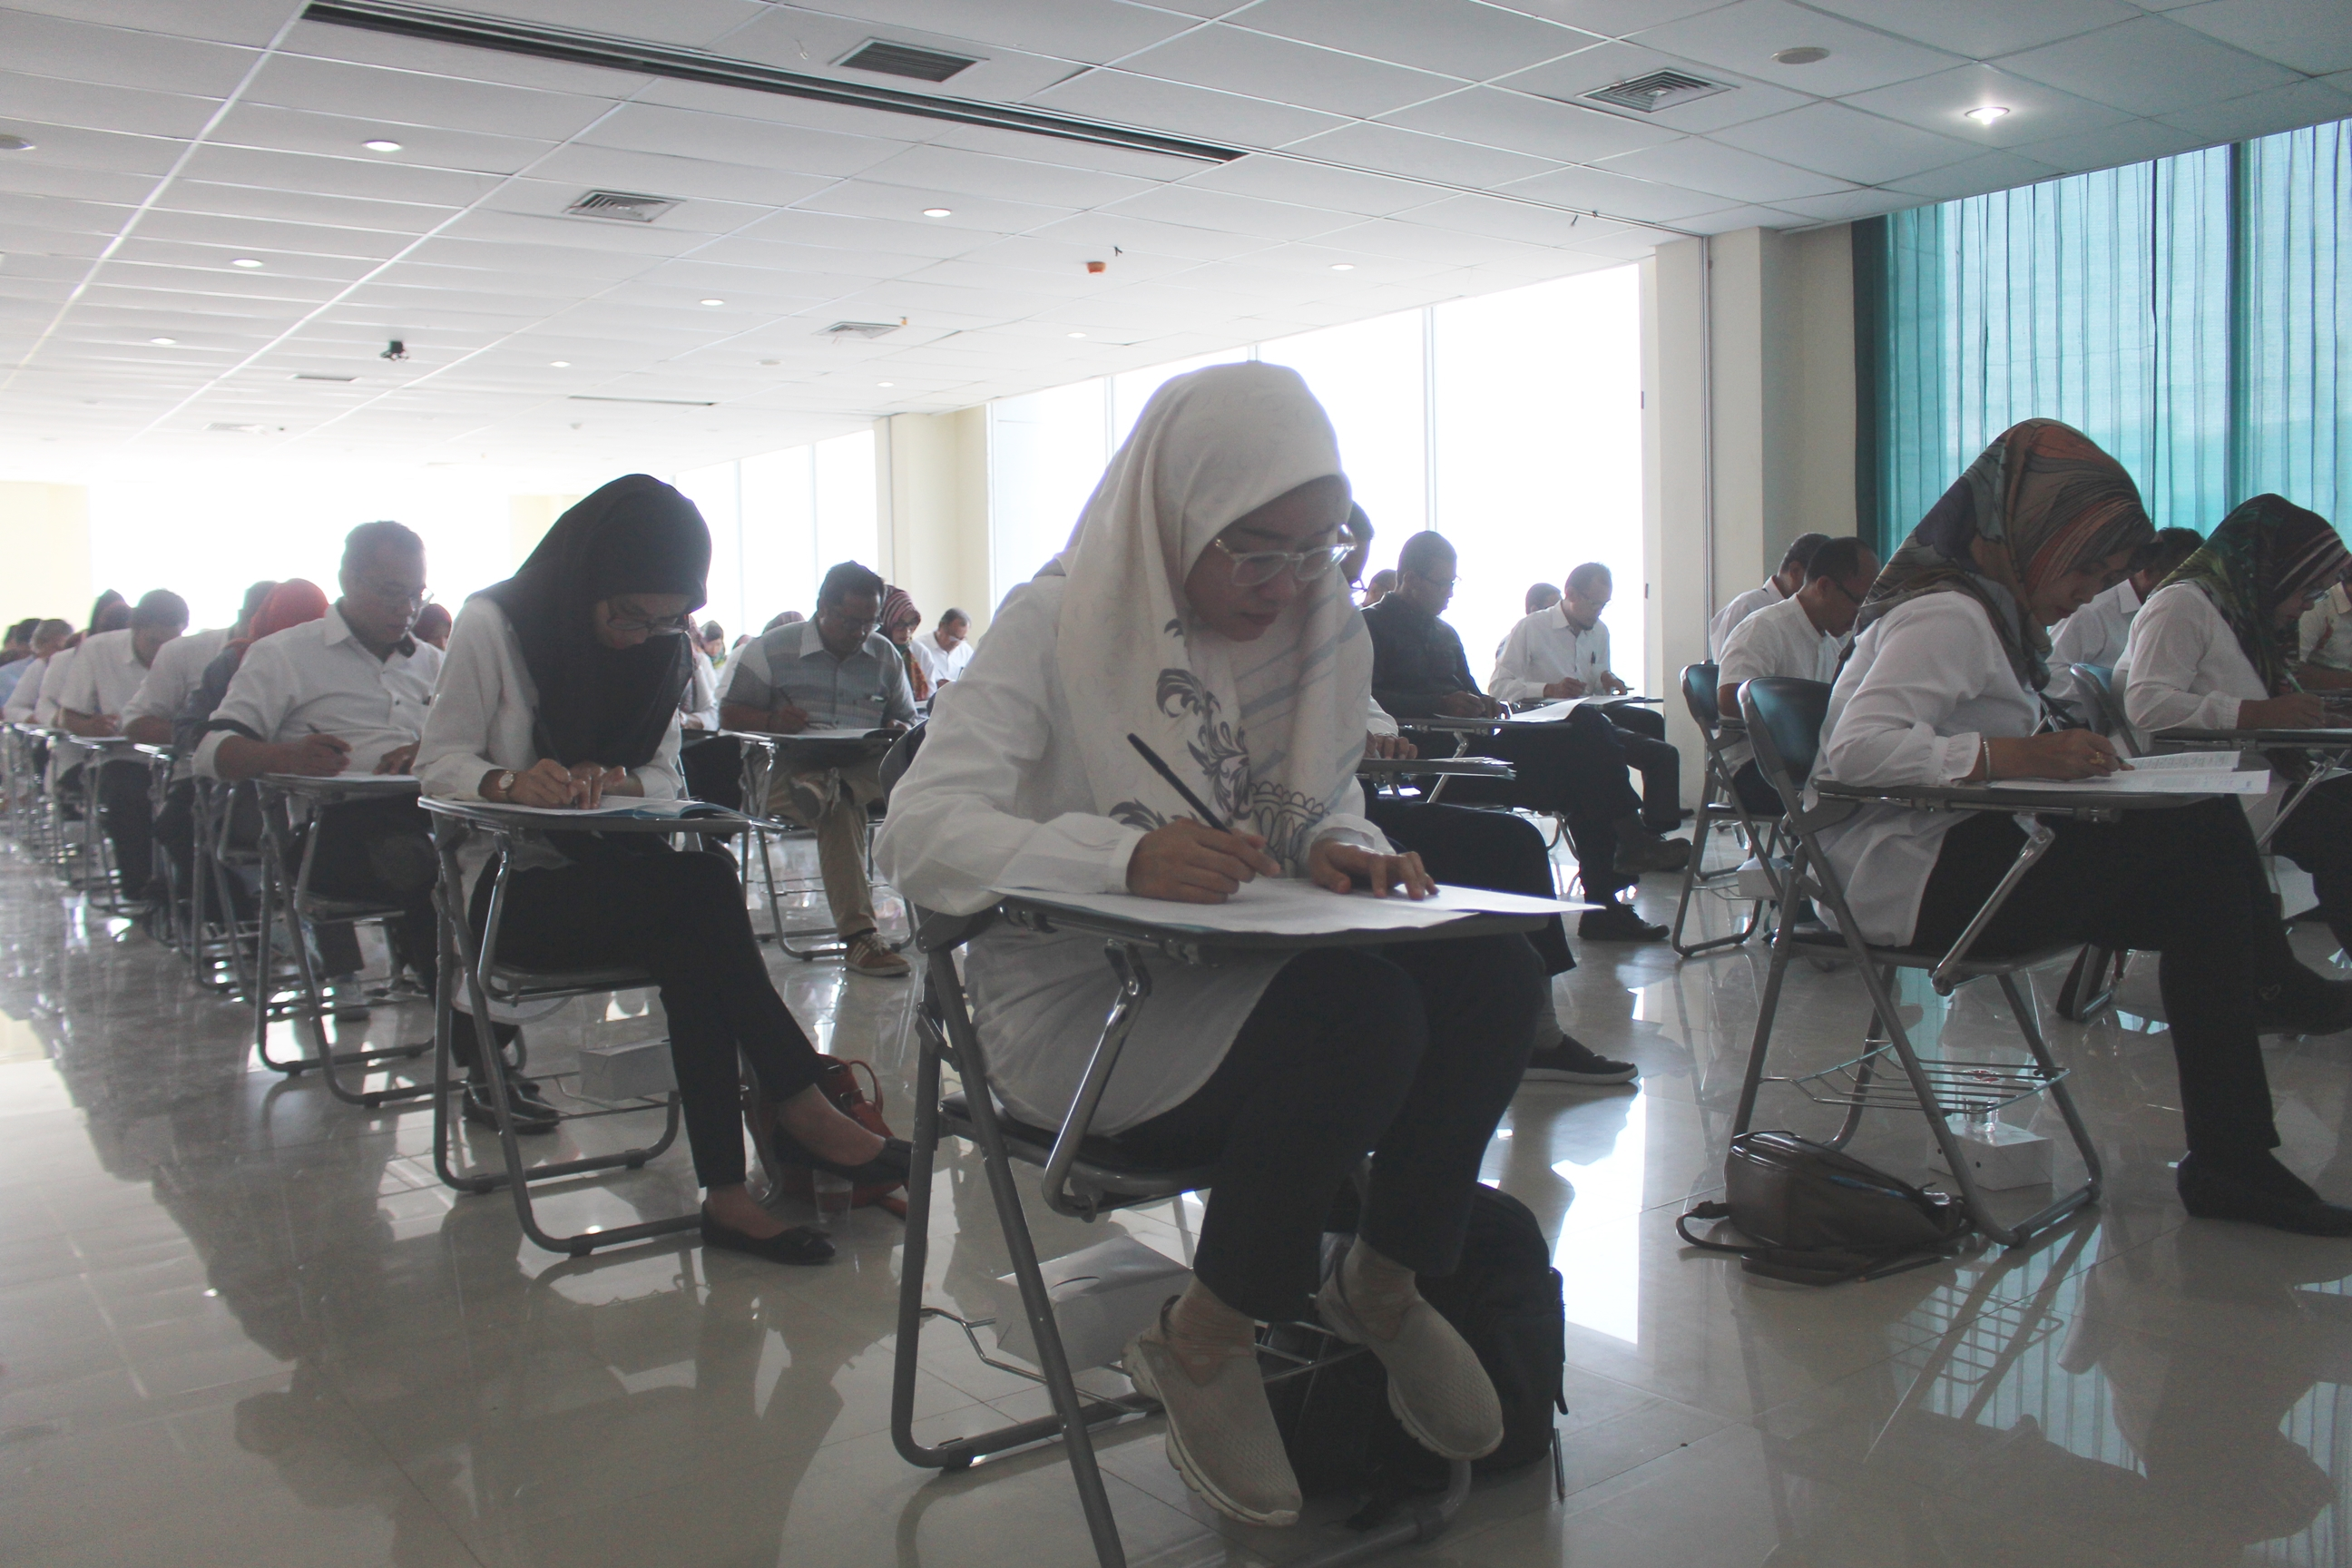 Structural Civil Servants of Untirta Took Part in Competence Test